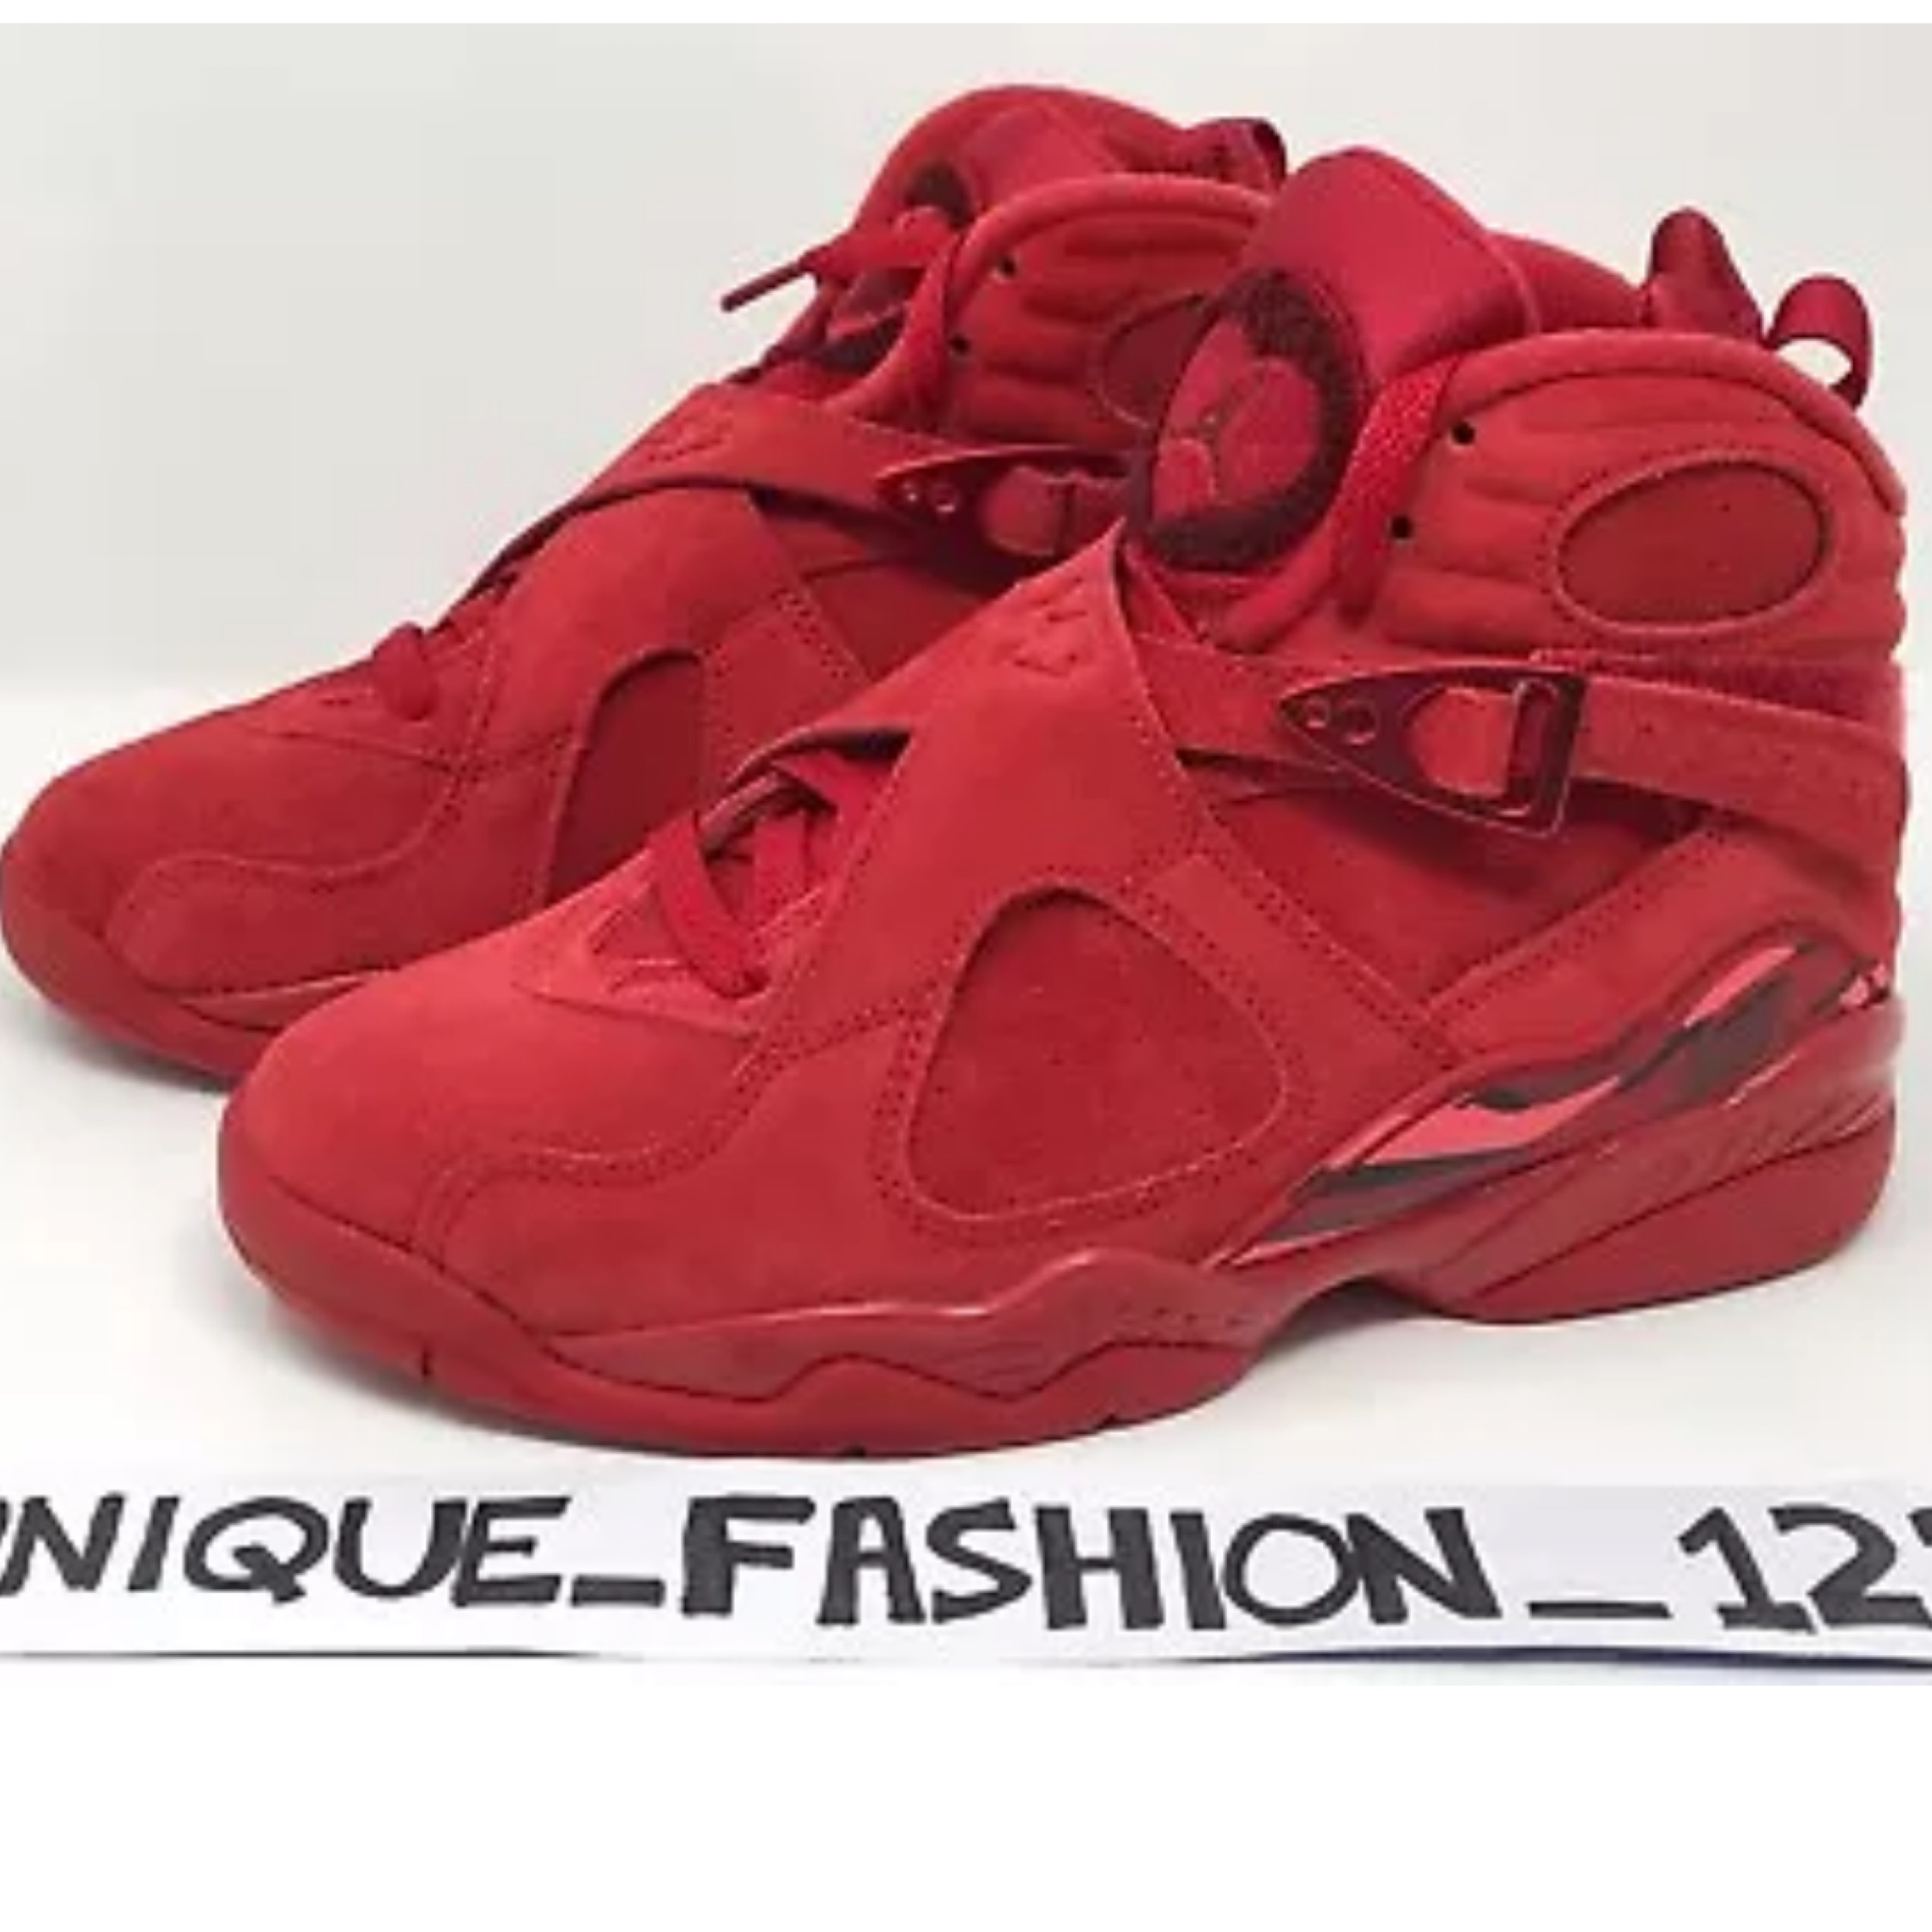 new product 99c8b 78e2a Nike Air Jordan 8 Valentines Day